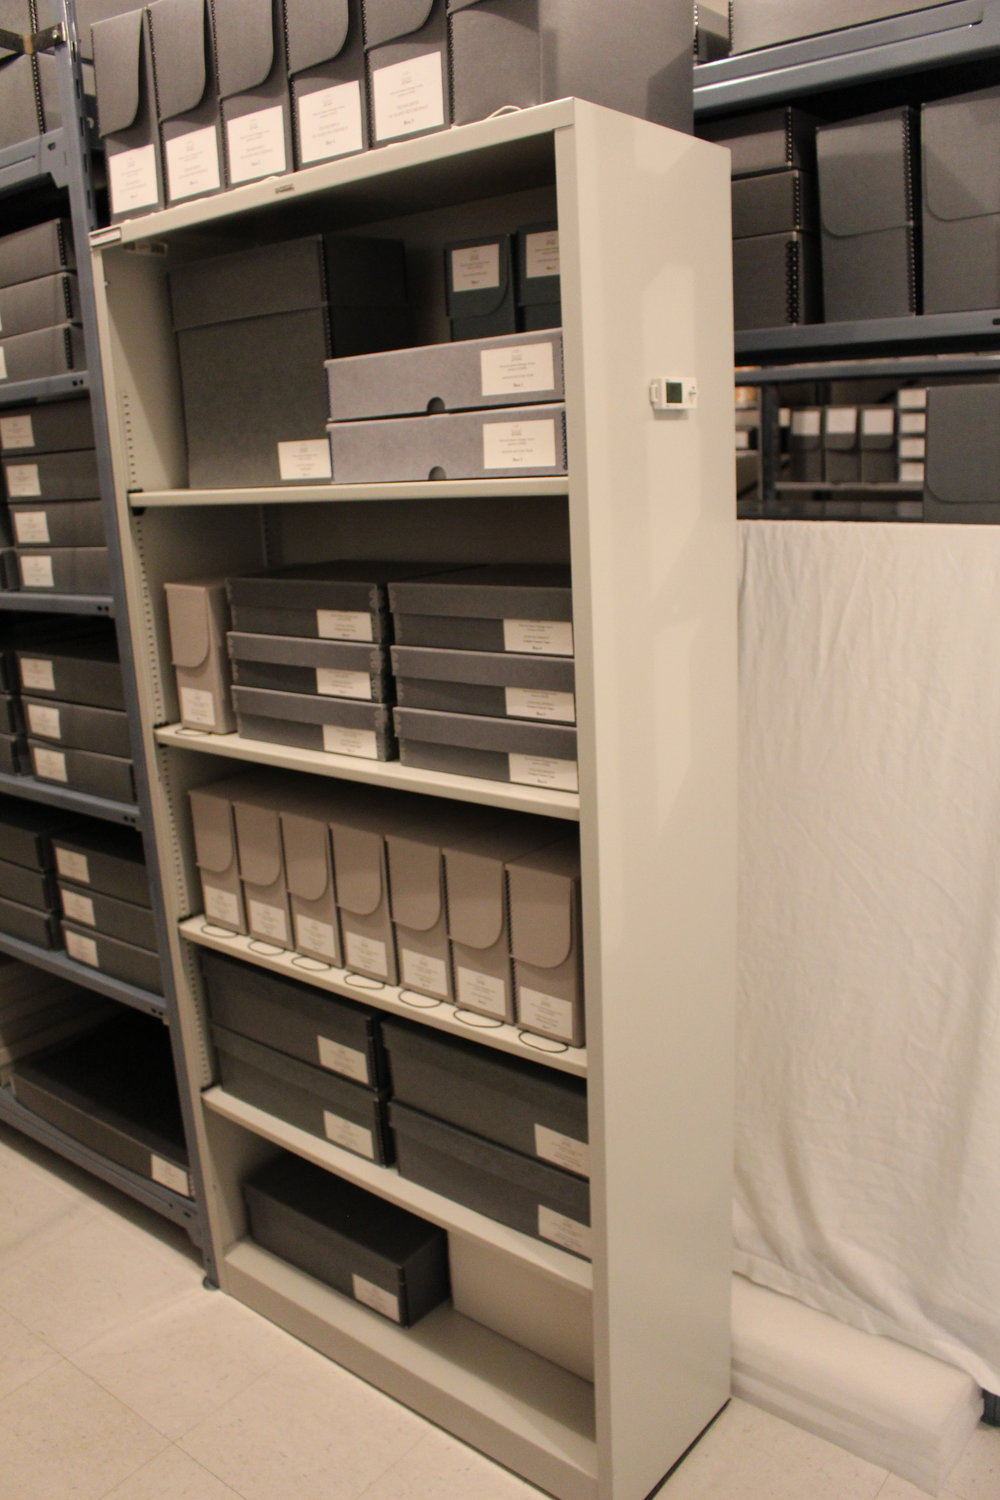 This is where all the audio-visual items are housed now. in boxes, out of the light and dusty atmosphere. Film reels, CDs/DVDs, and cassettes are in boxes that keep them safe from being crushed or scratched. Transcriptions of each item are housed on the top shelf for easy access.